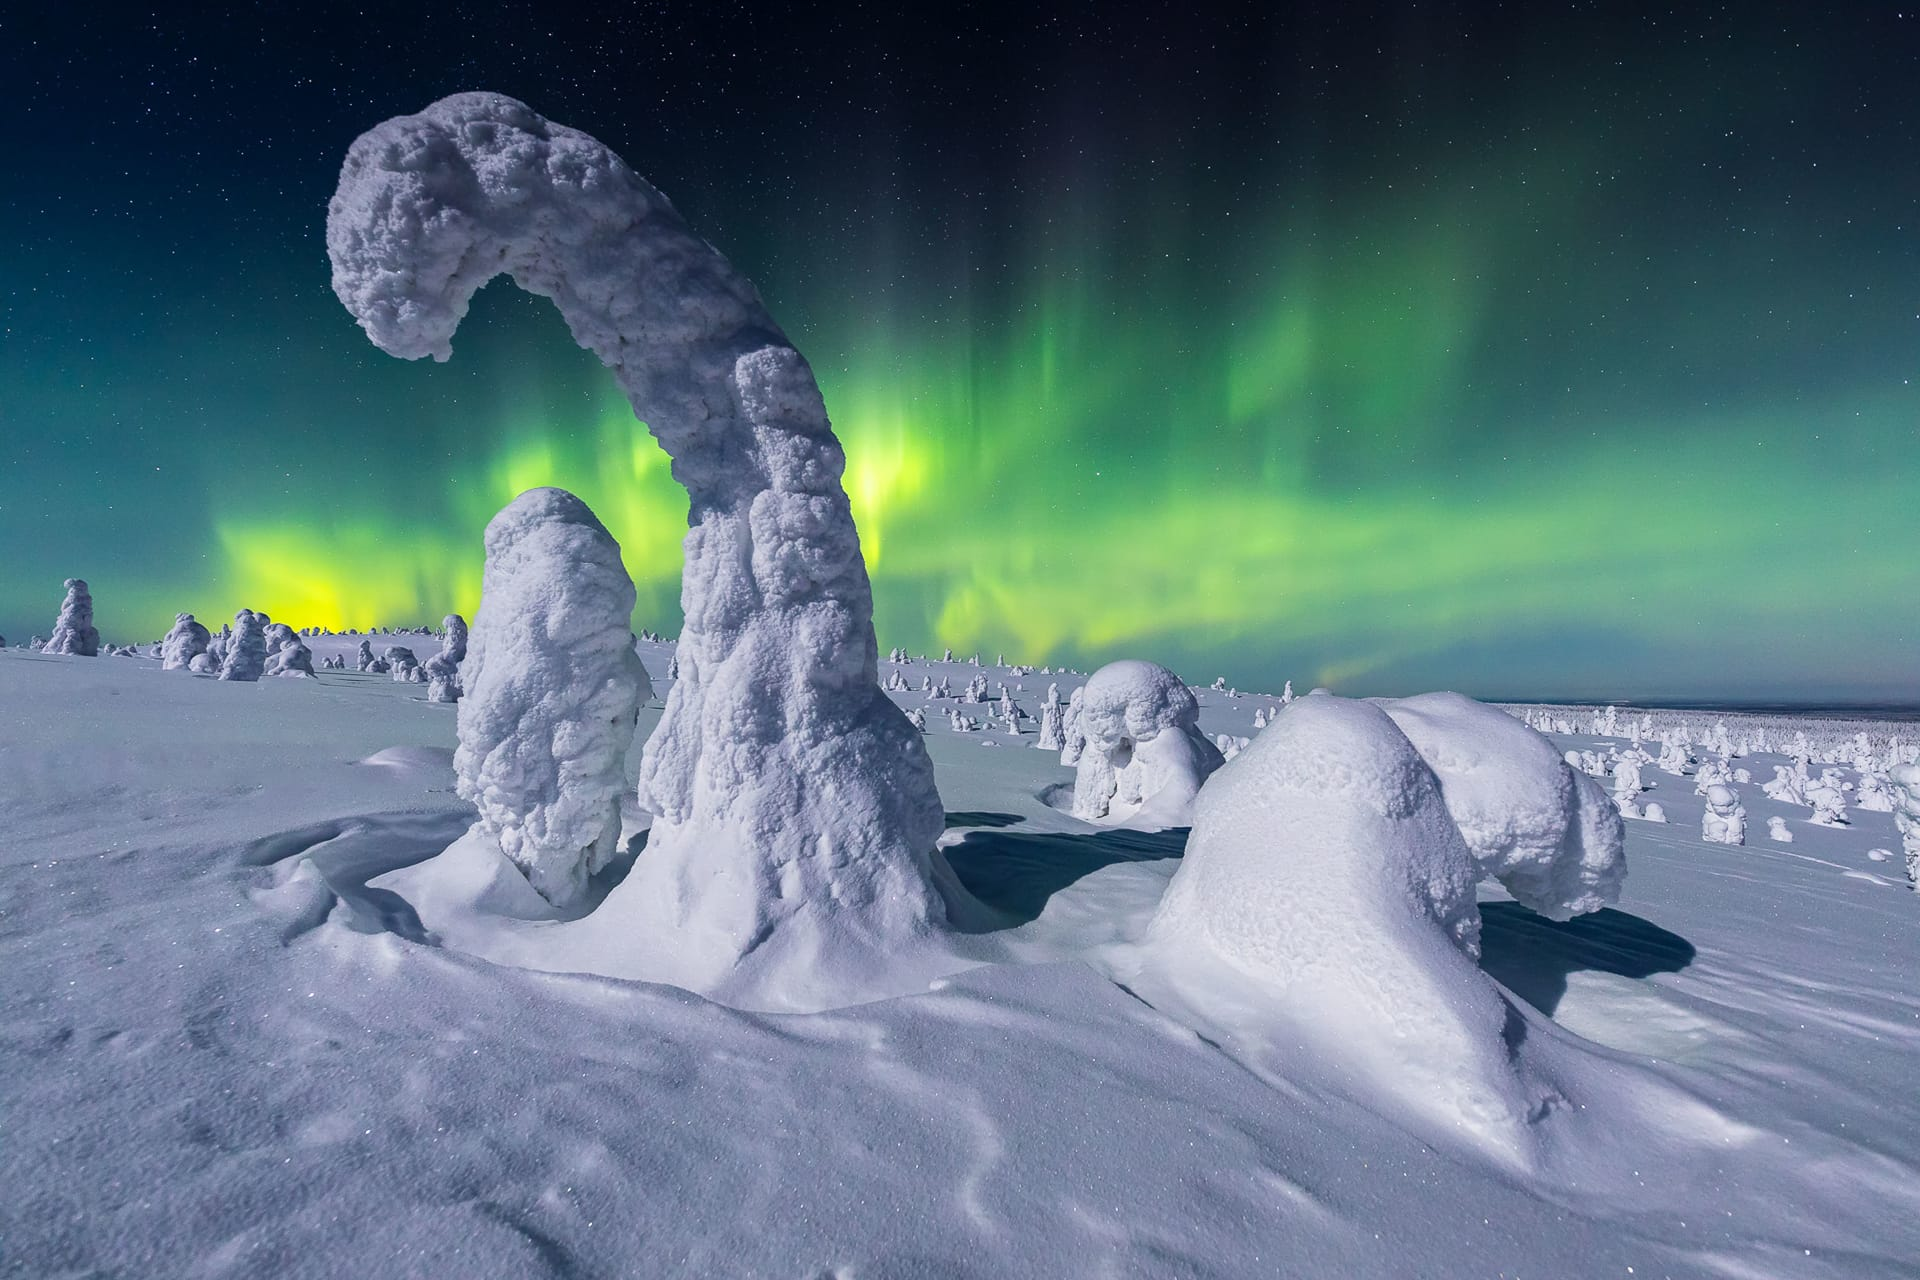 Best Northern Lights images Finland